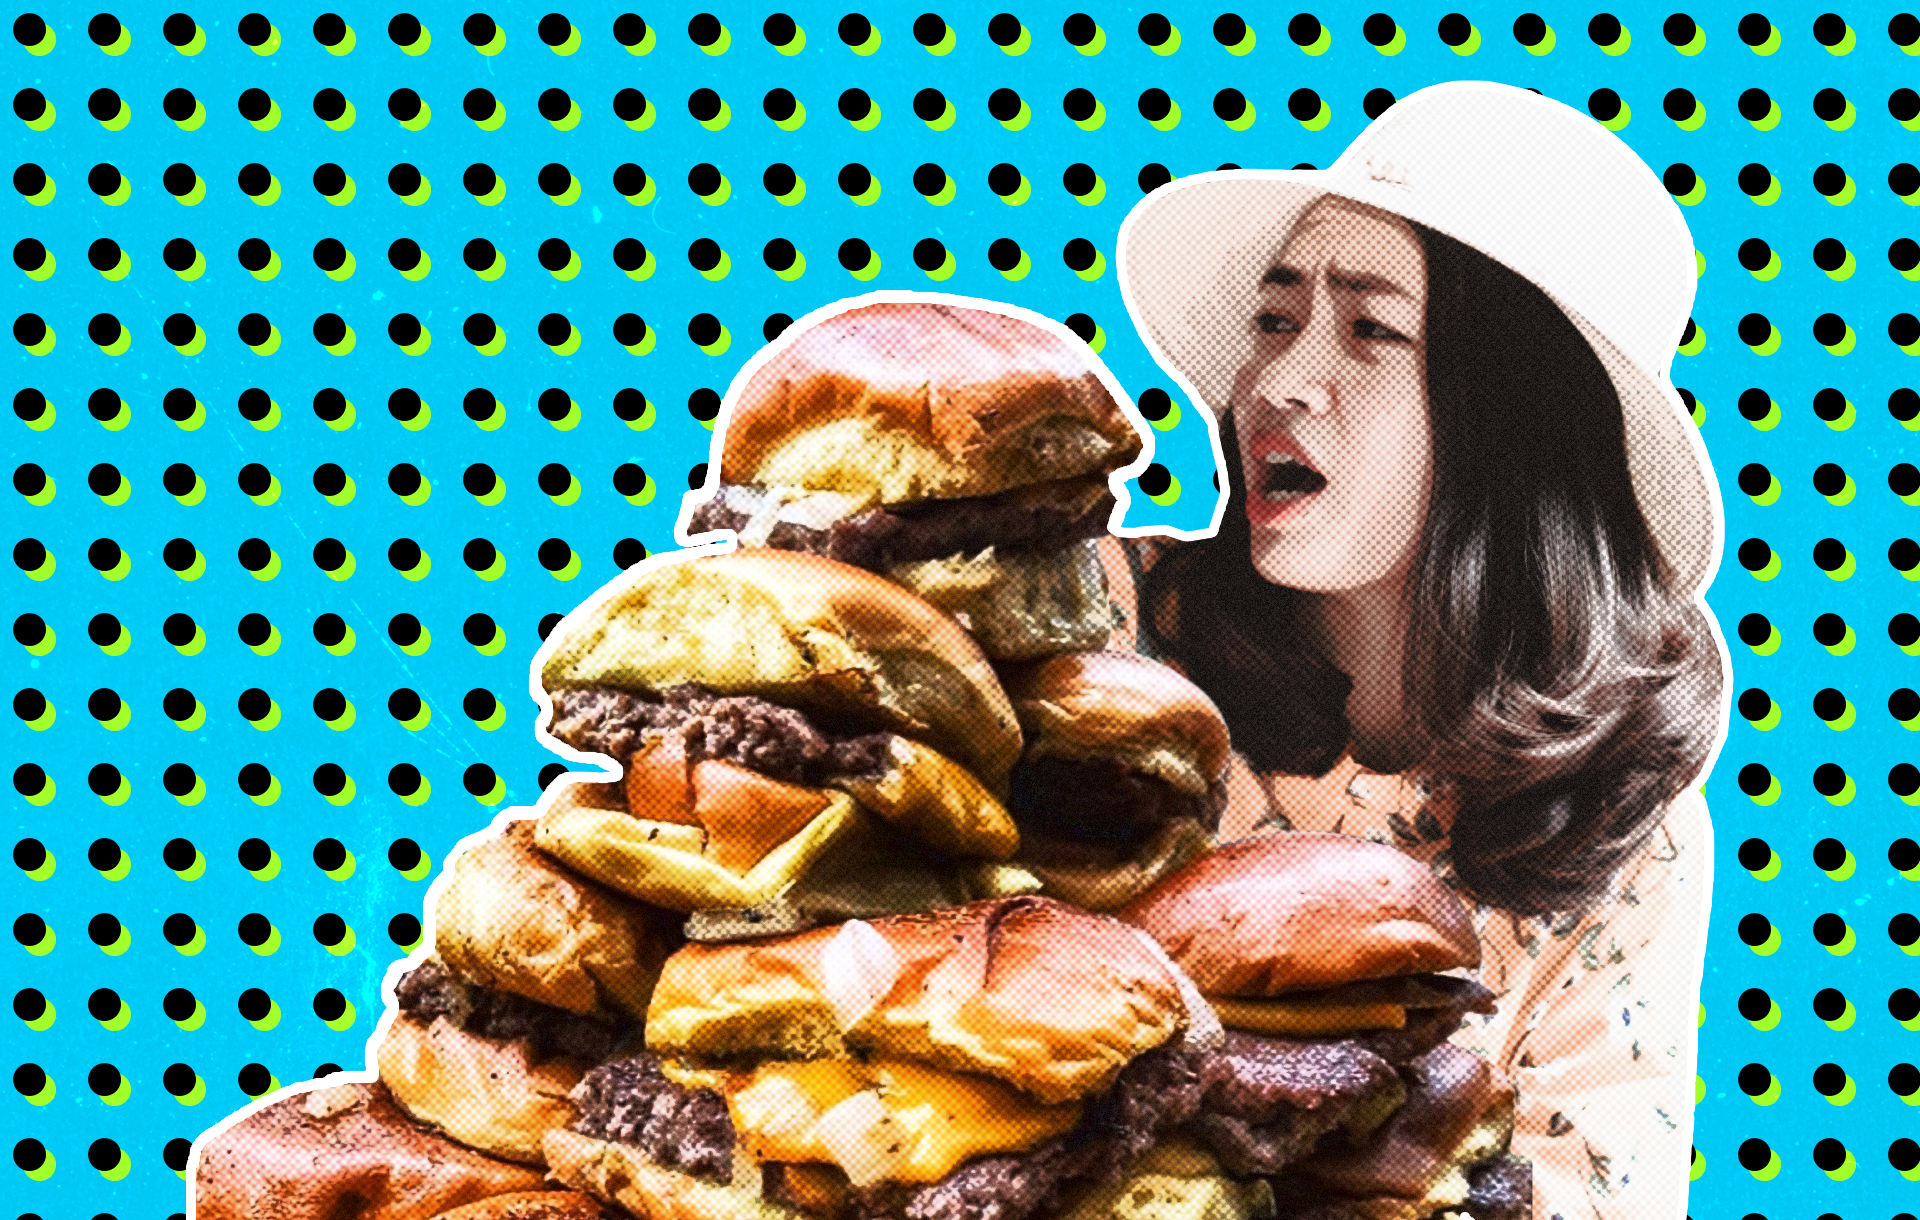 Mukbang: The Extreme Eating Food Craze that's Taking the World by Storm   Features   LIVING LIFE FEARLESS